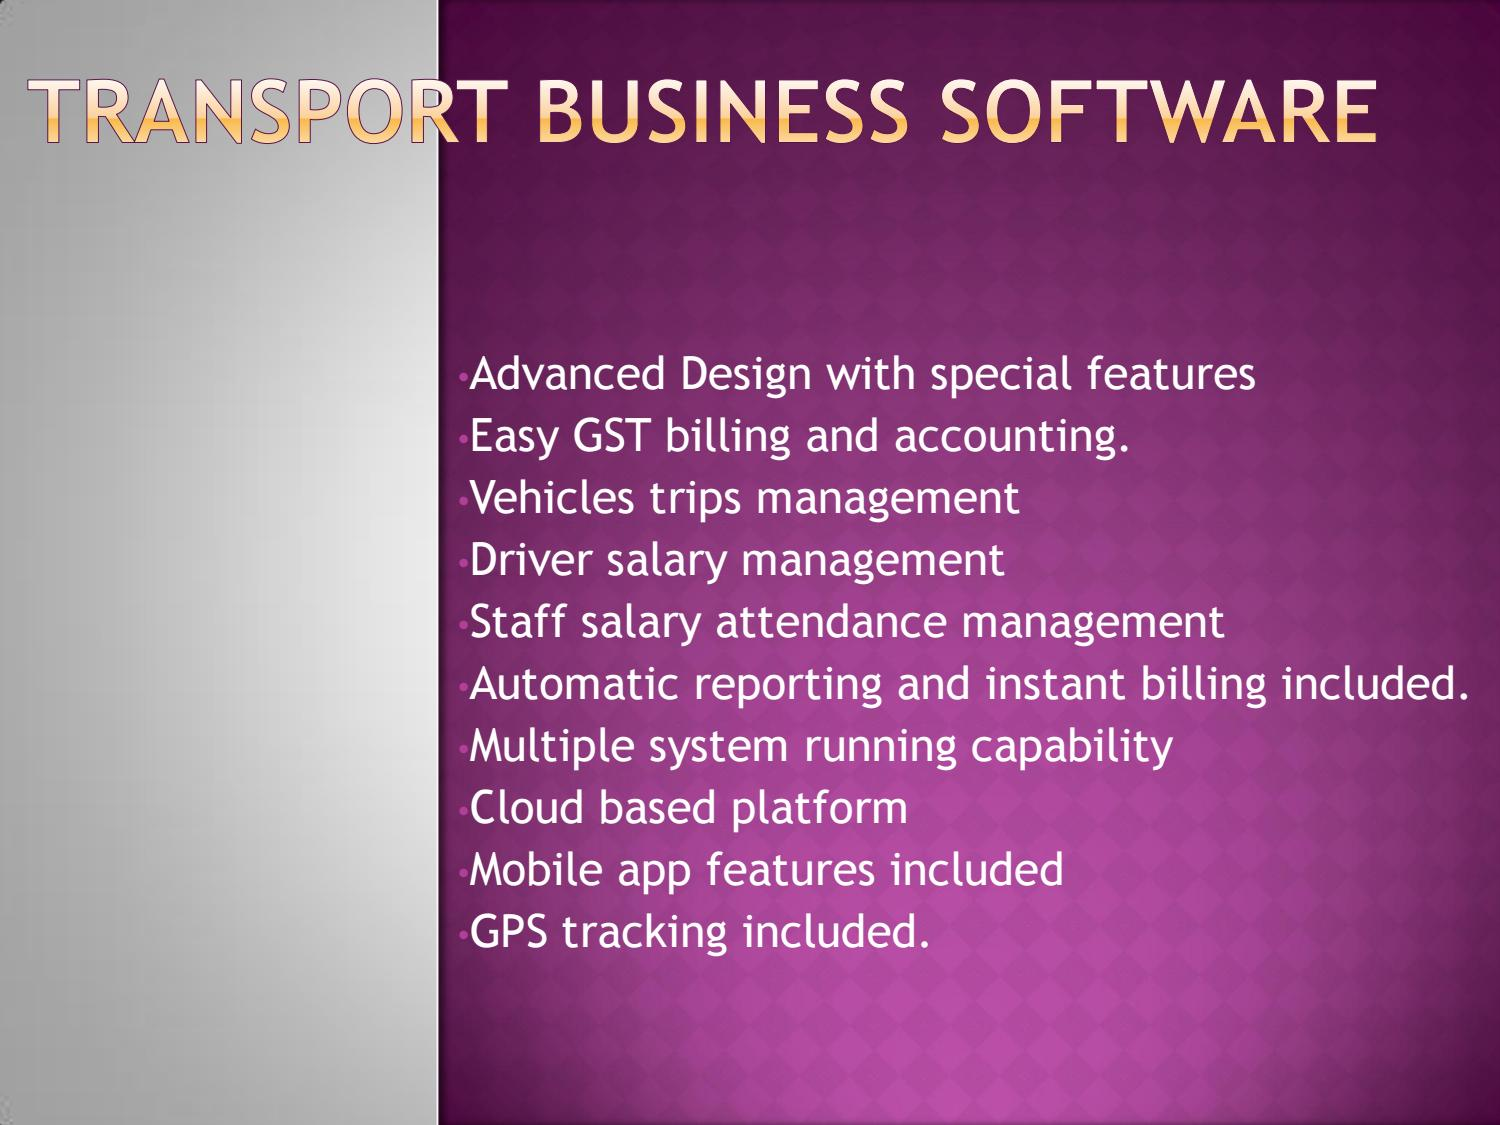 Online Transport Software|Cheap Transport Software by